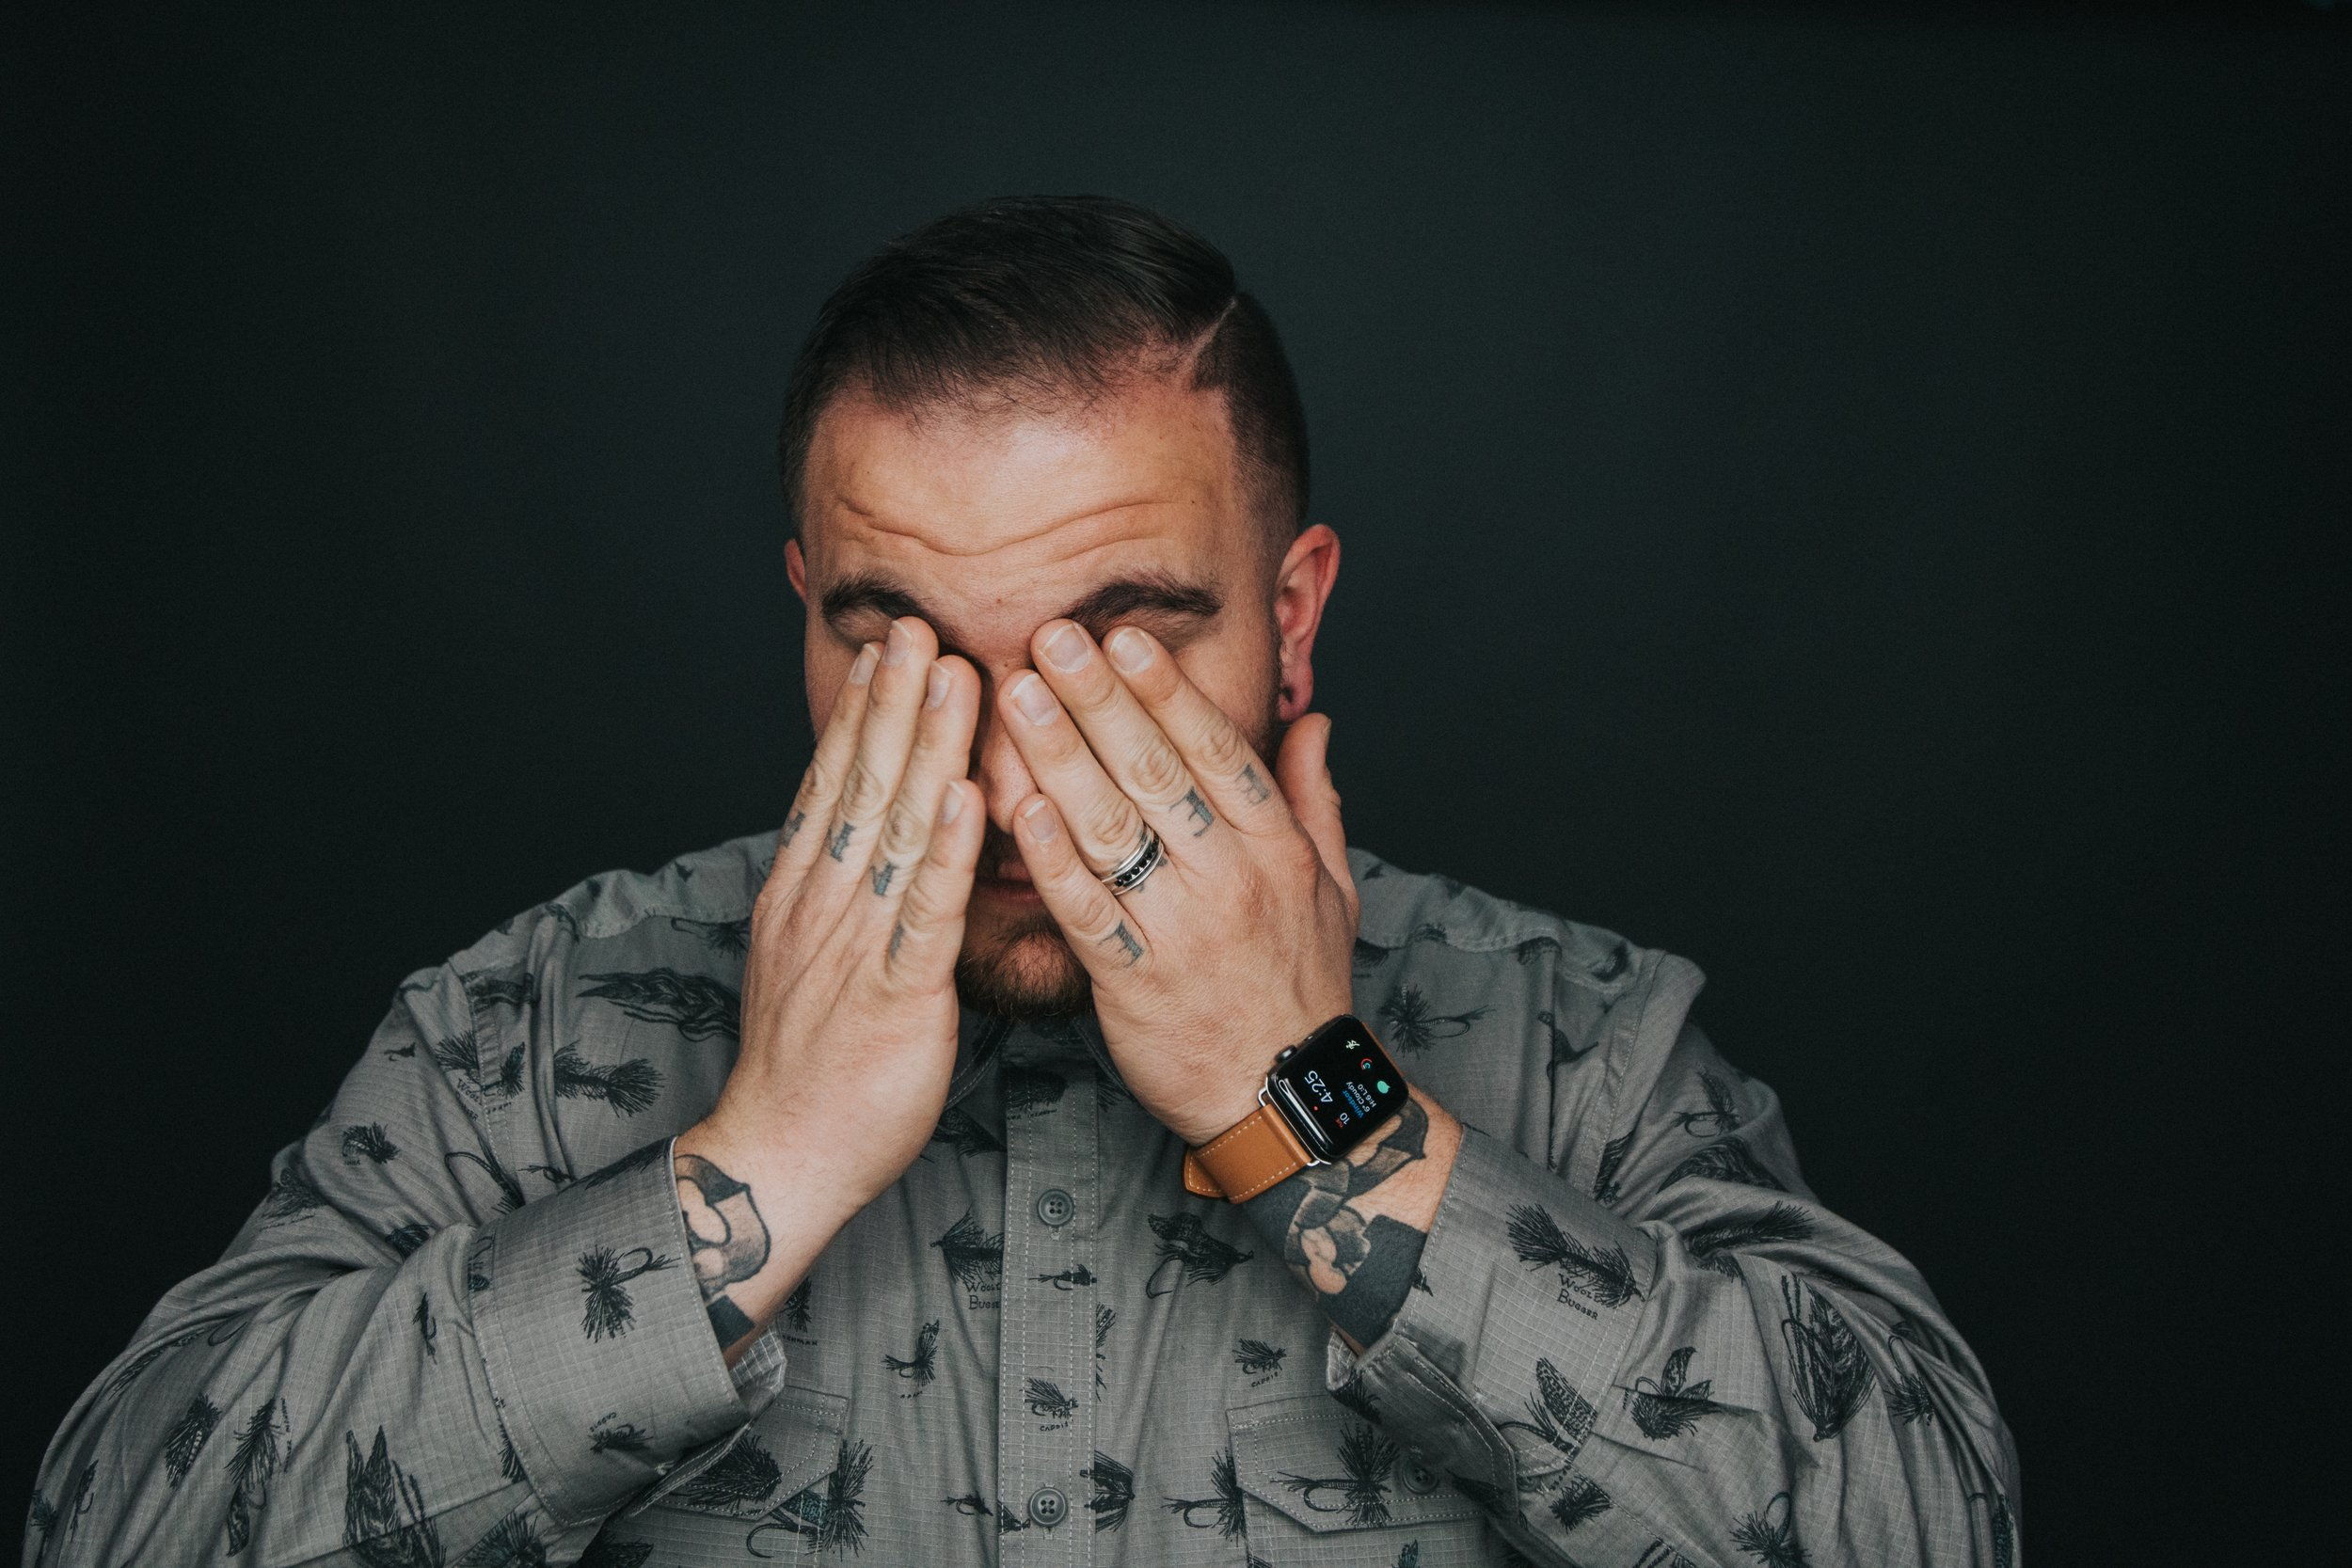 Man with hands covering his eyes